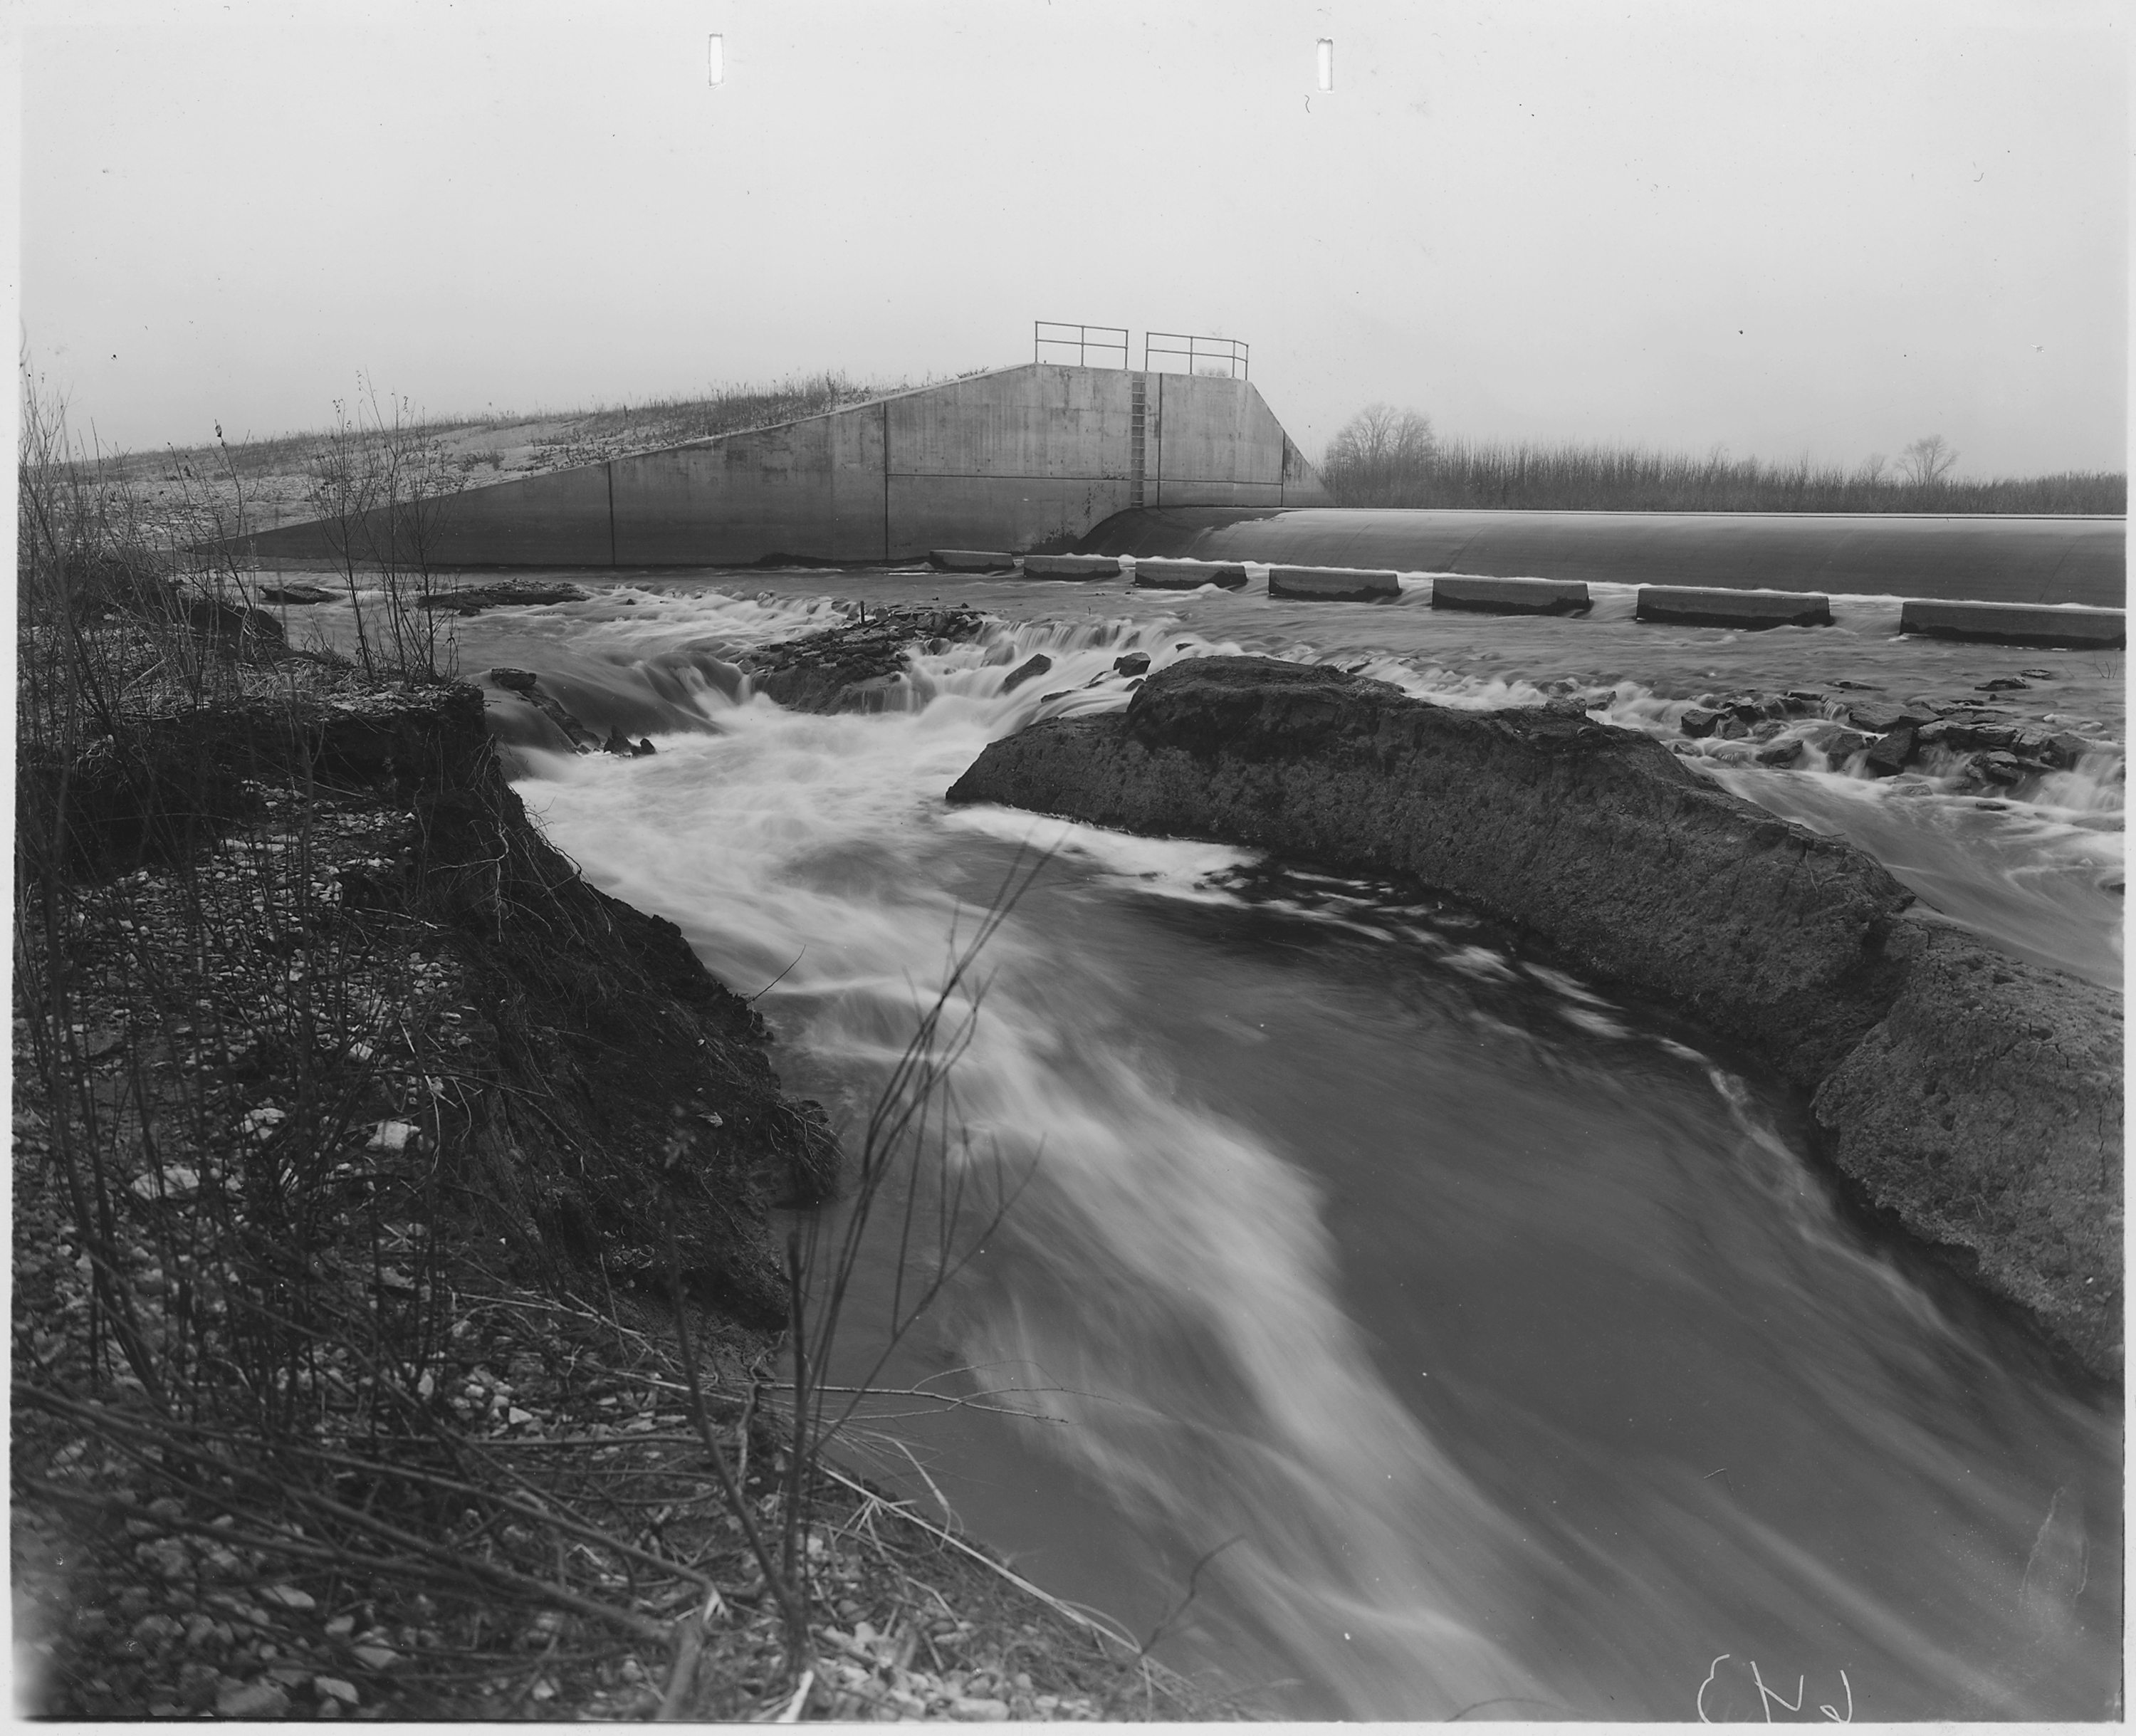 File Photograph Of Erosion Below Ogee Spillway Dam No 10